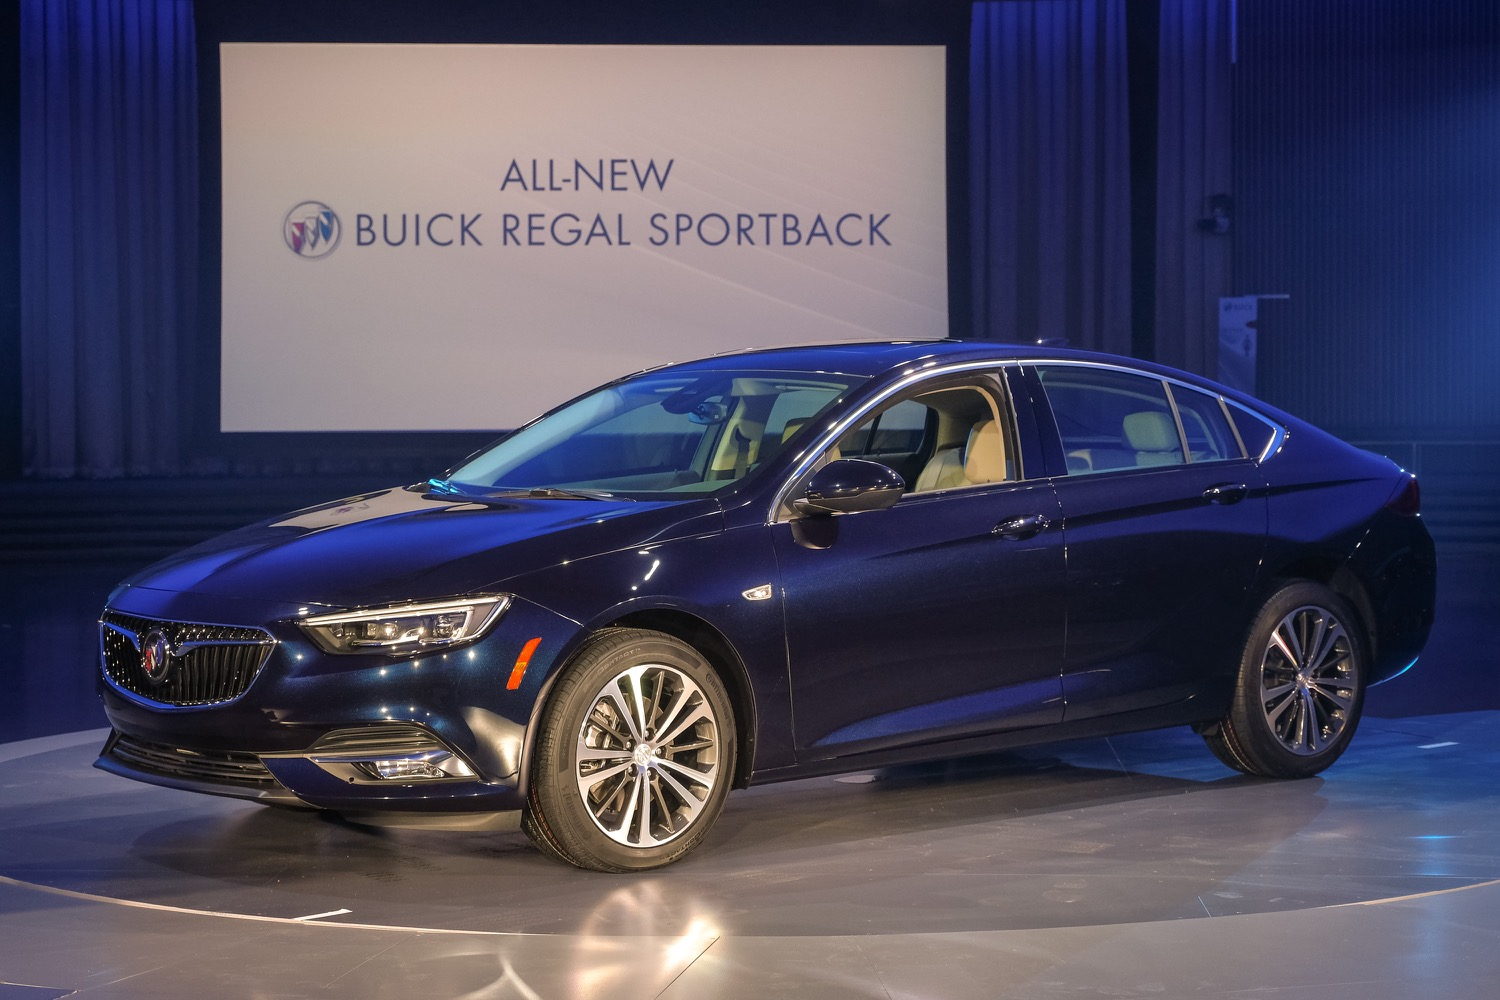 2019 Buick Regal Info, Specs, Wiki | Gm Authority 2022 Buick Regal Awd, Dimensions, Price